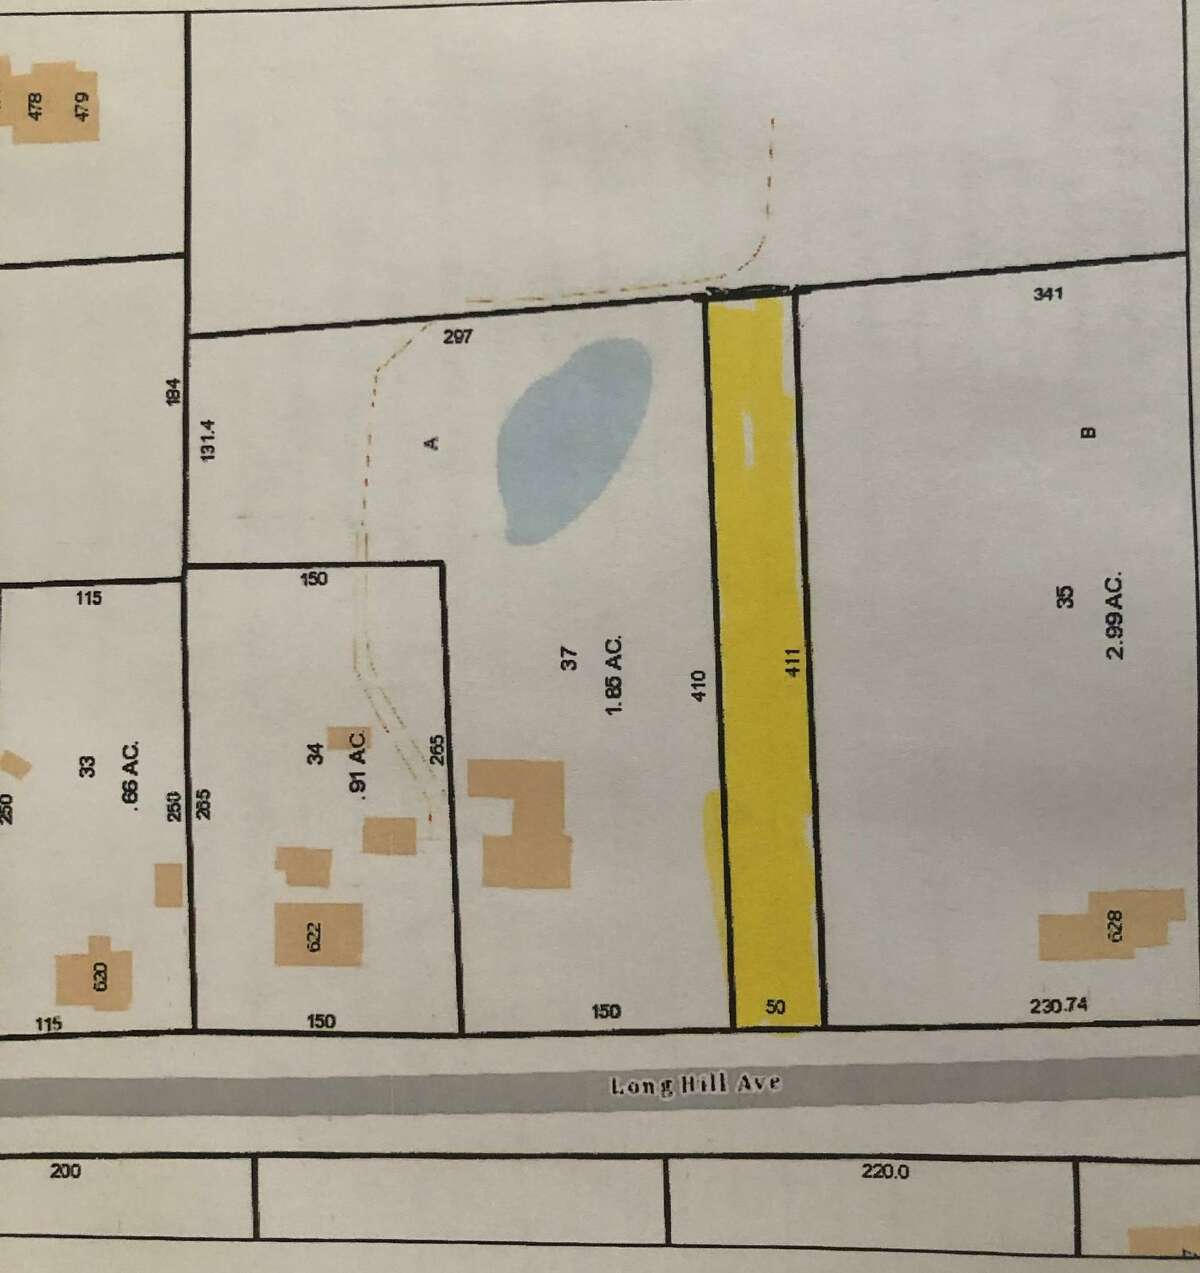 The 0 Long Hill Avenue parcel is described as a rectangular strip of land, 50 feet wide, 411 feet in length, and located in a R-1 residential zone. The parcel the city hopes to sell is shaded.